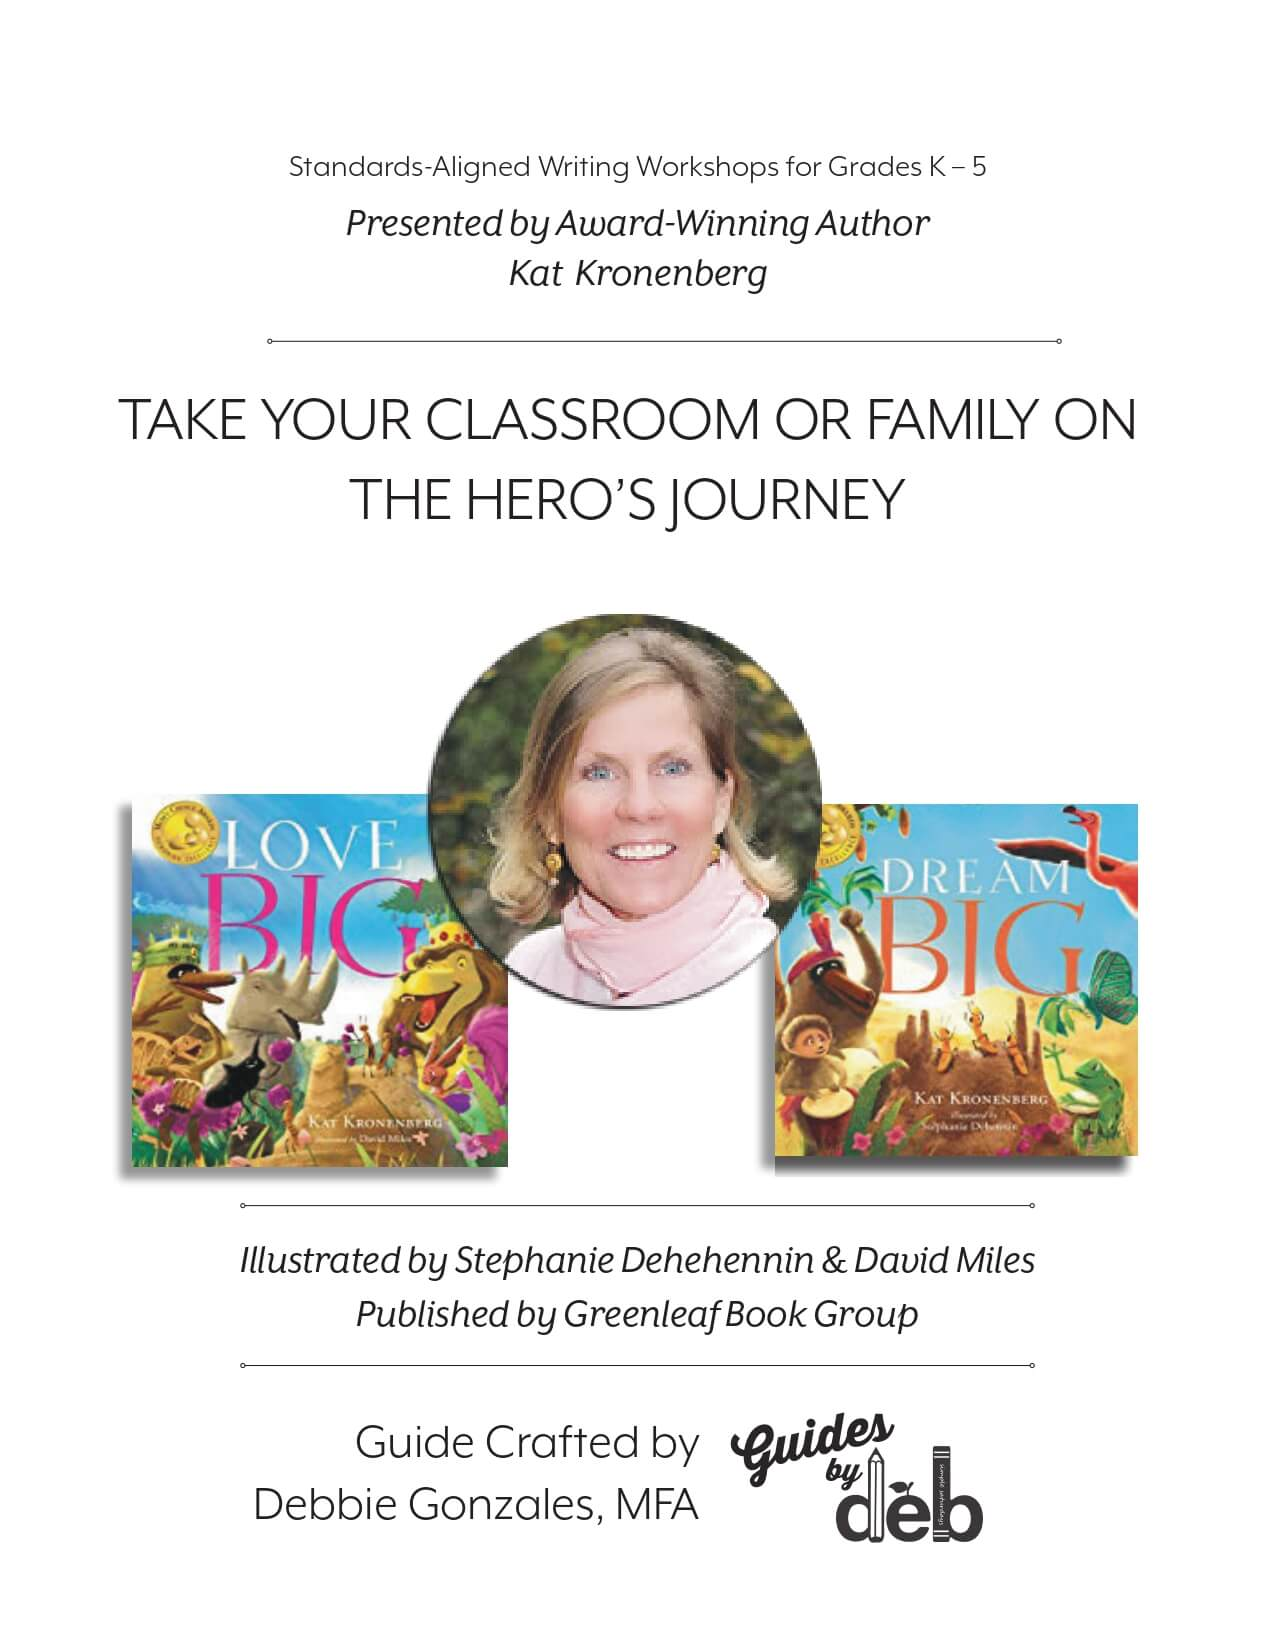 TAKE YOUR CLASSROOM OR FAMILY ON THE HERO'S JOURNEY_page-0001